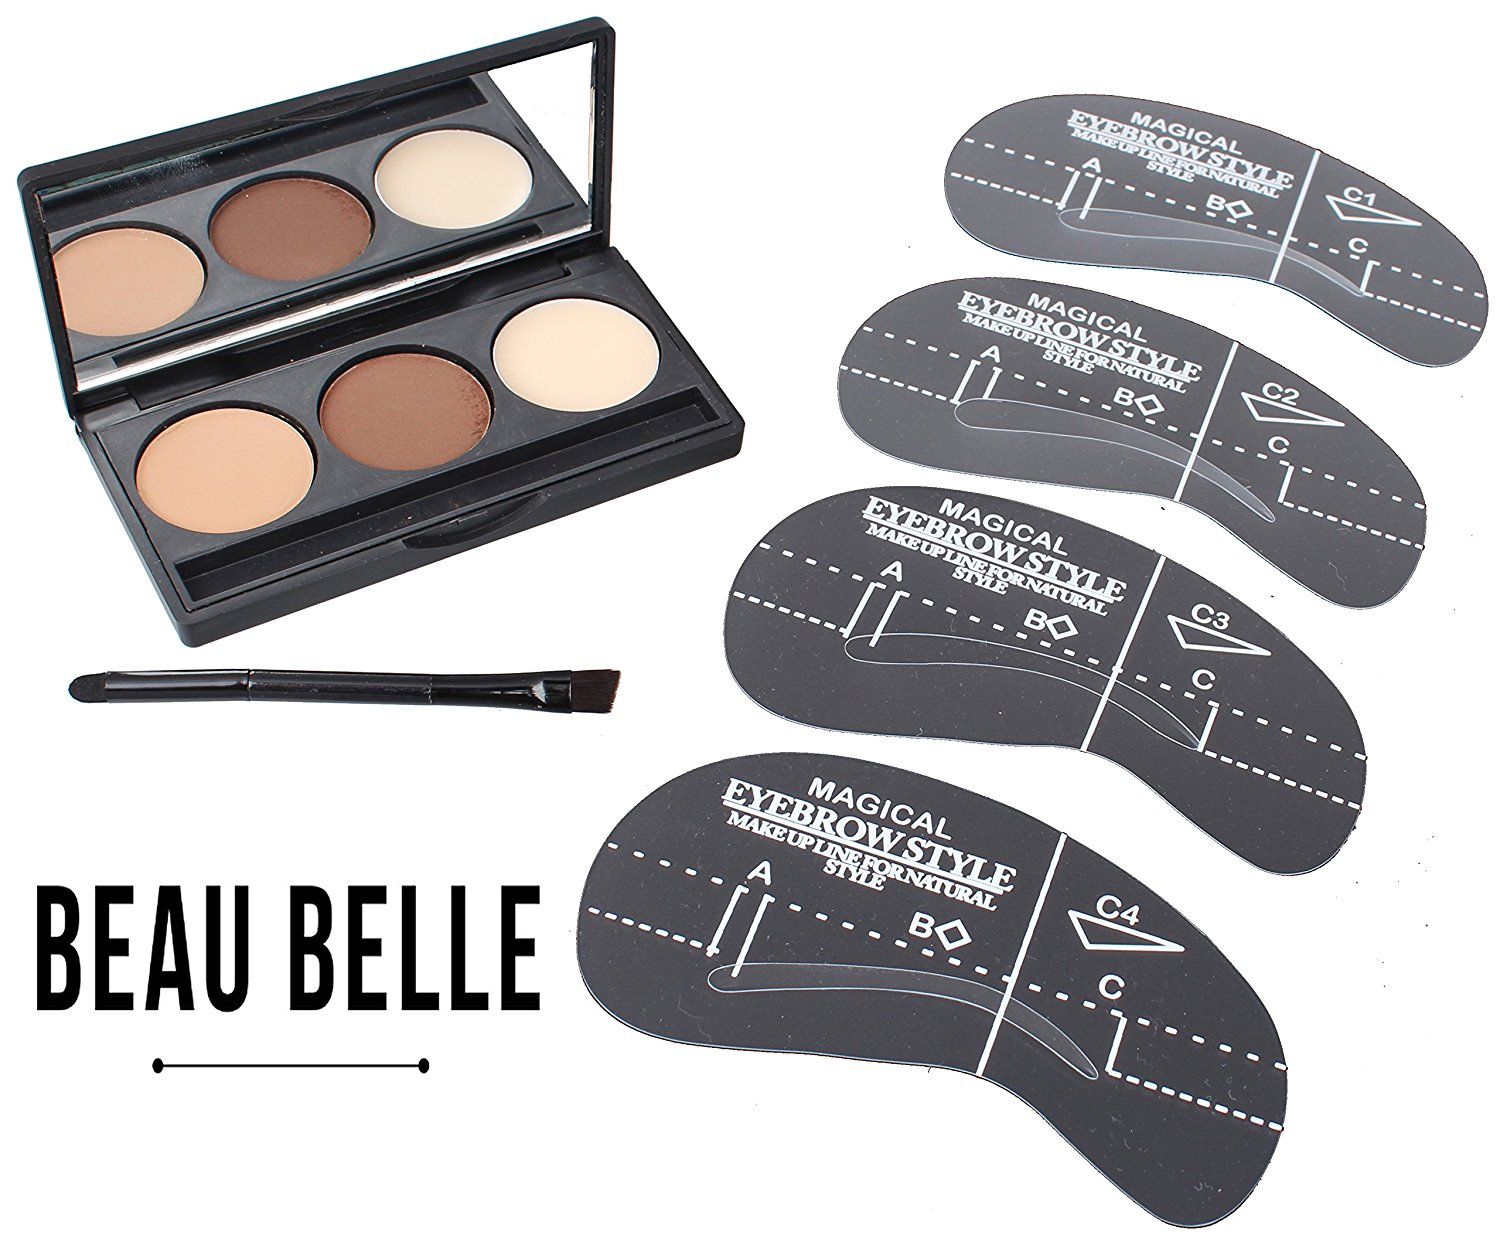 Beau Belle Eyebrow Kit - Eyebrow Stencil - Eyebrow Shaper - Brow Kit - Brow Stencil - Brow Shaper - Eyebrow Stencil Kit - Eyebrow Stencil Template - Eyebrow Stencils Eyebrows Shape - Eyebrow Stencil Kit Shaping Tool